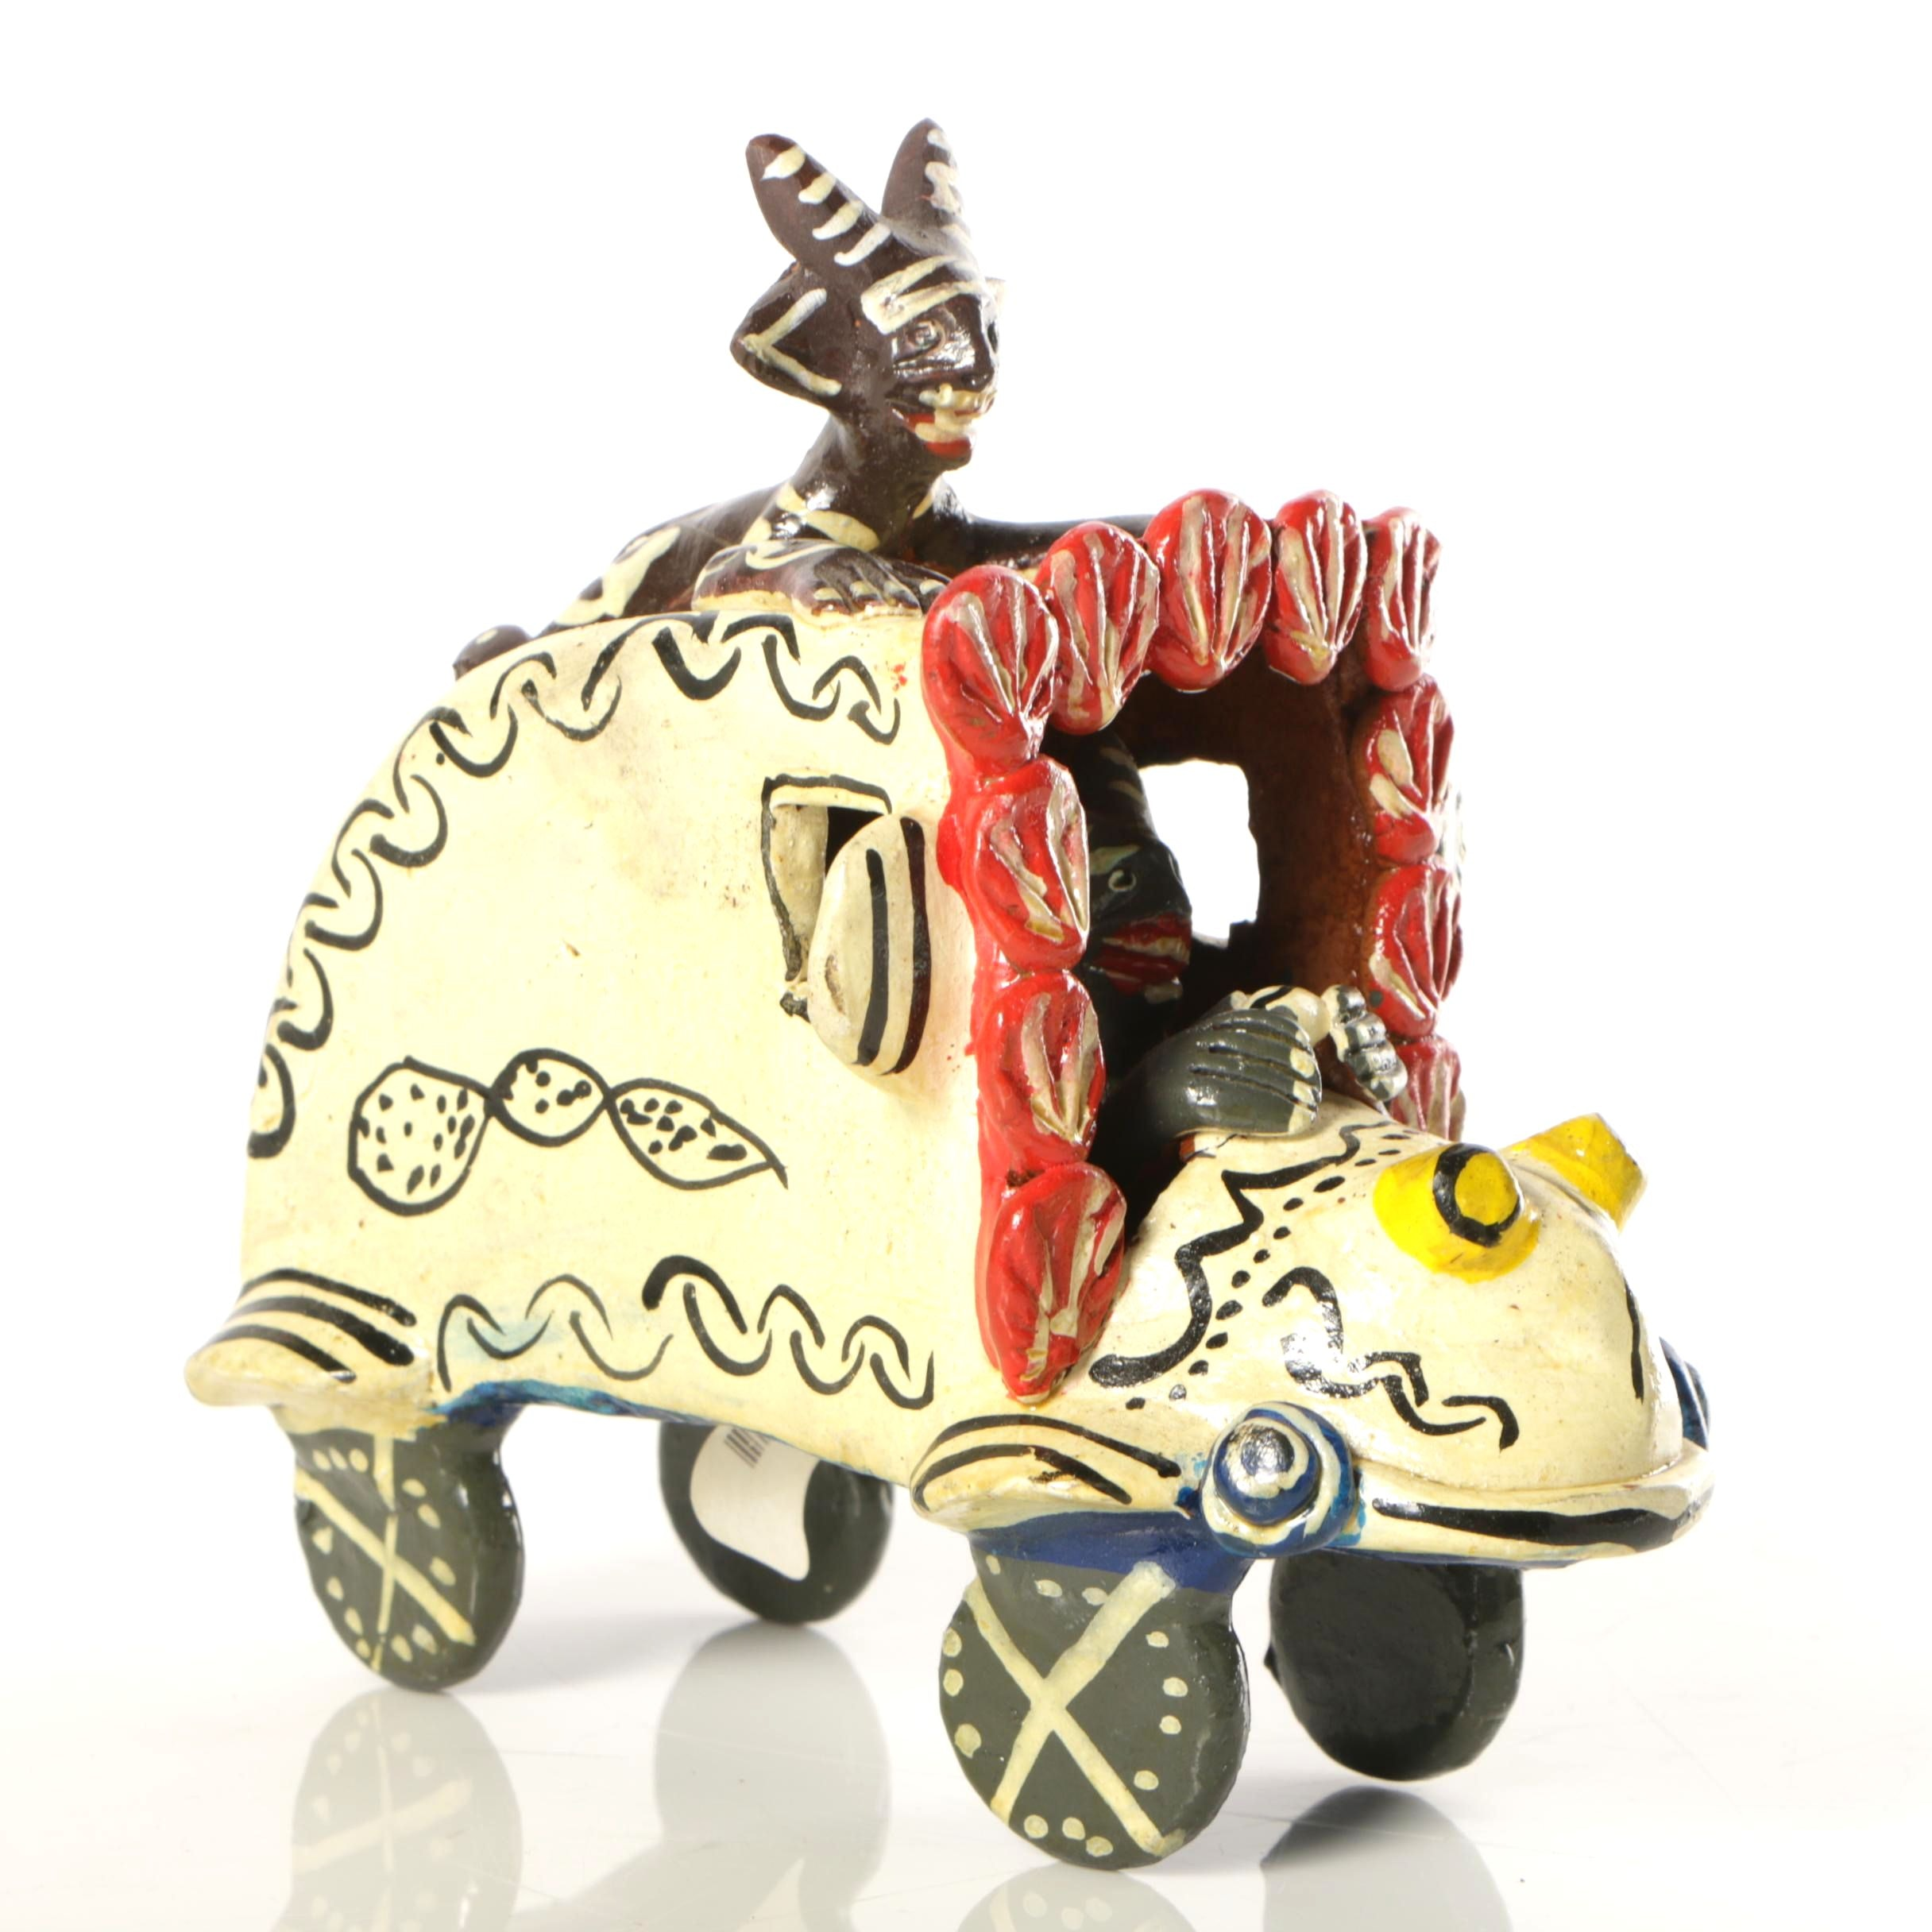 Folk Art Style Ceramic Sculpture of Car with Figures